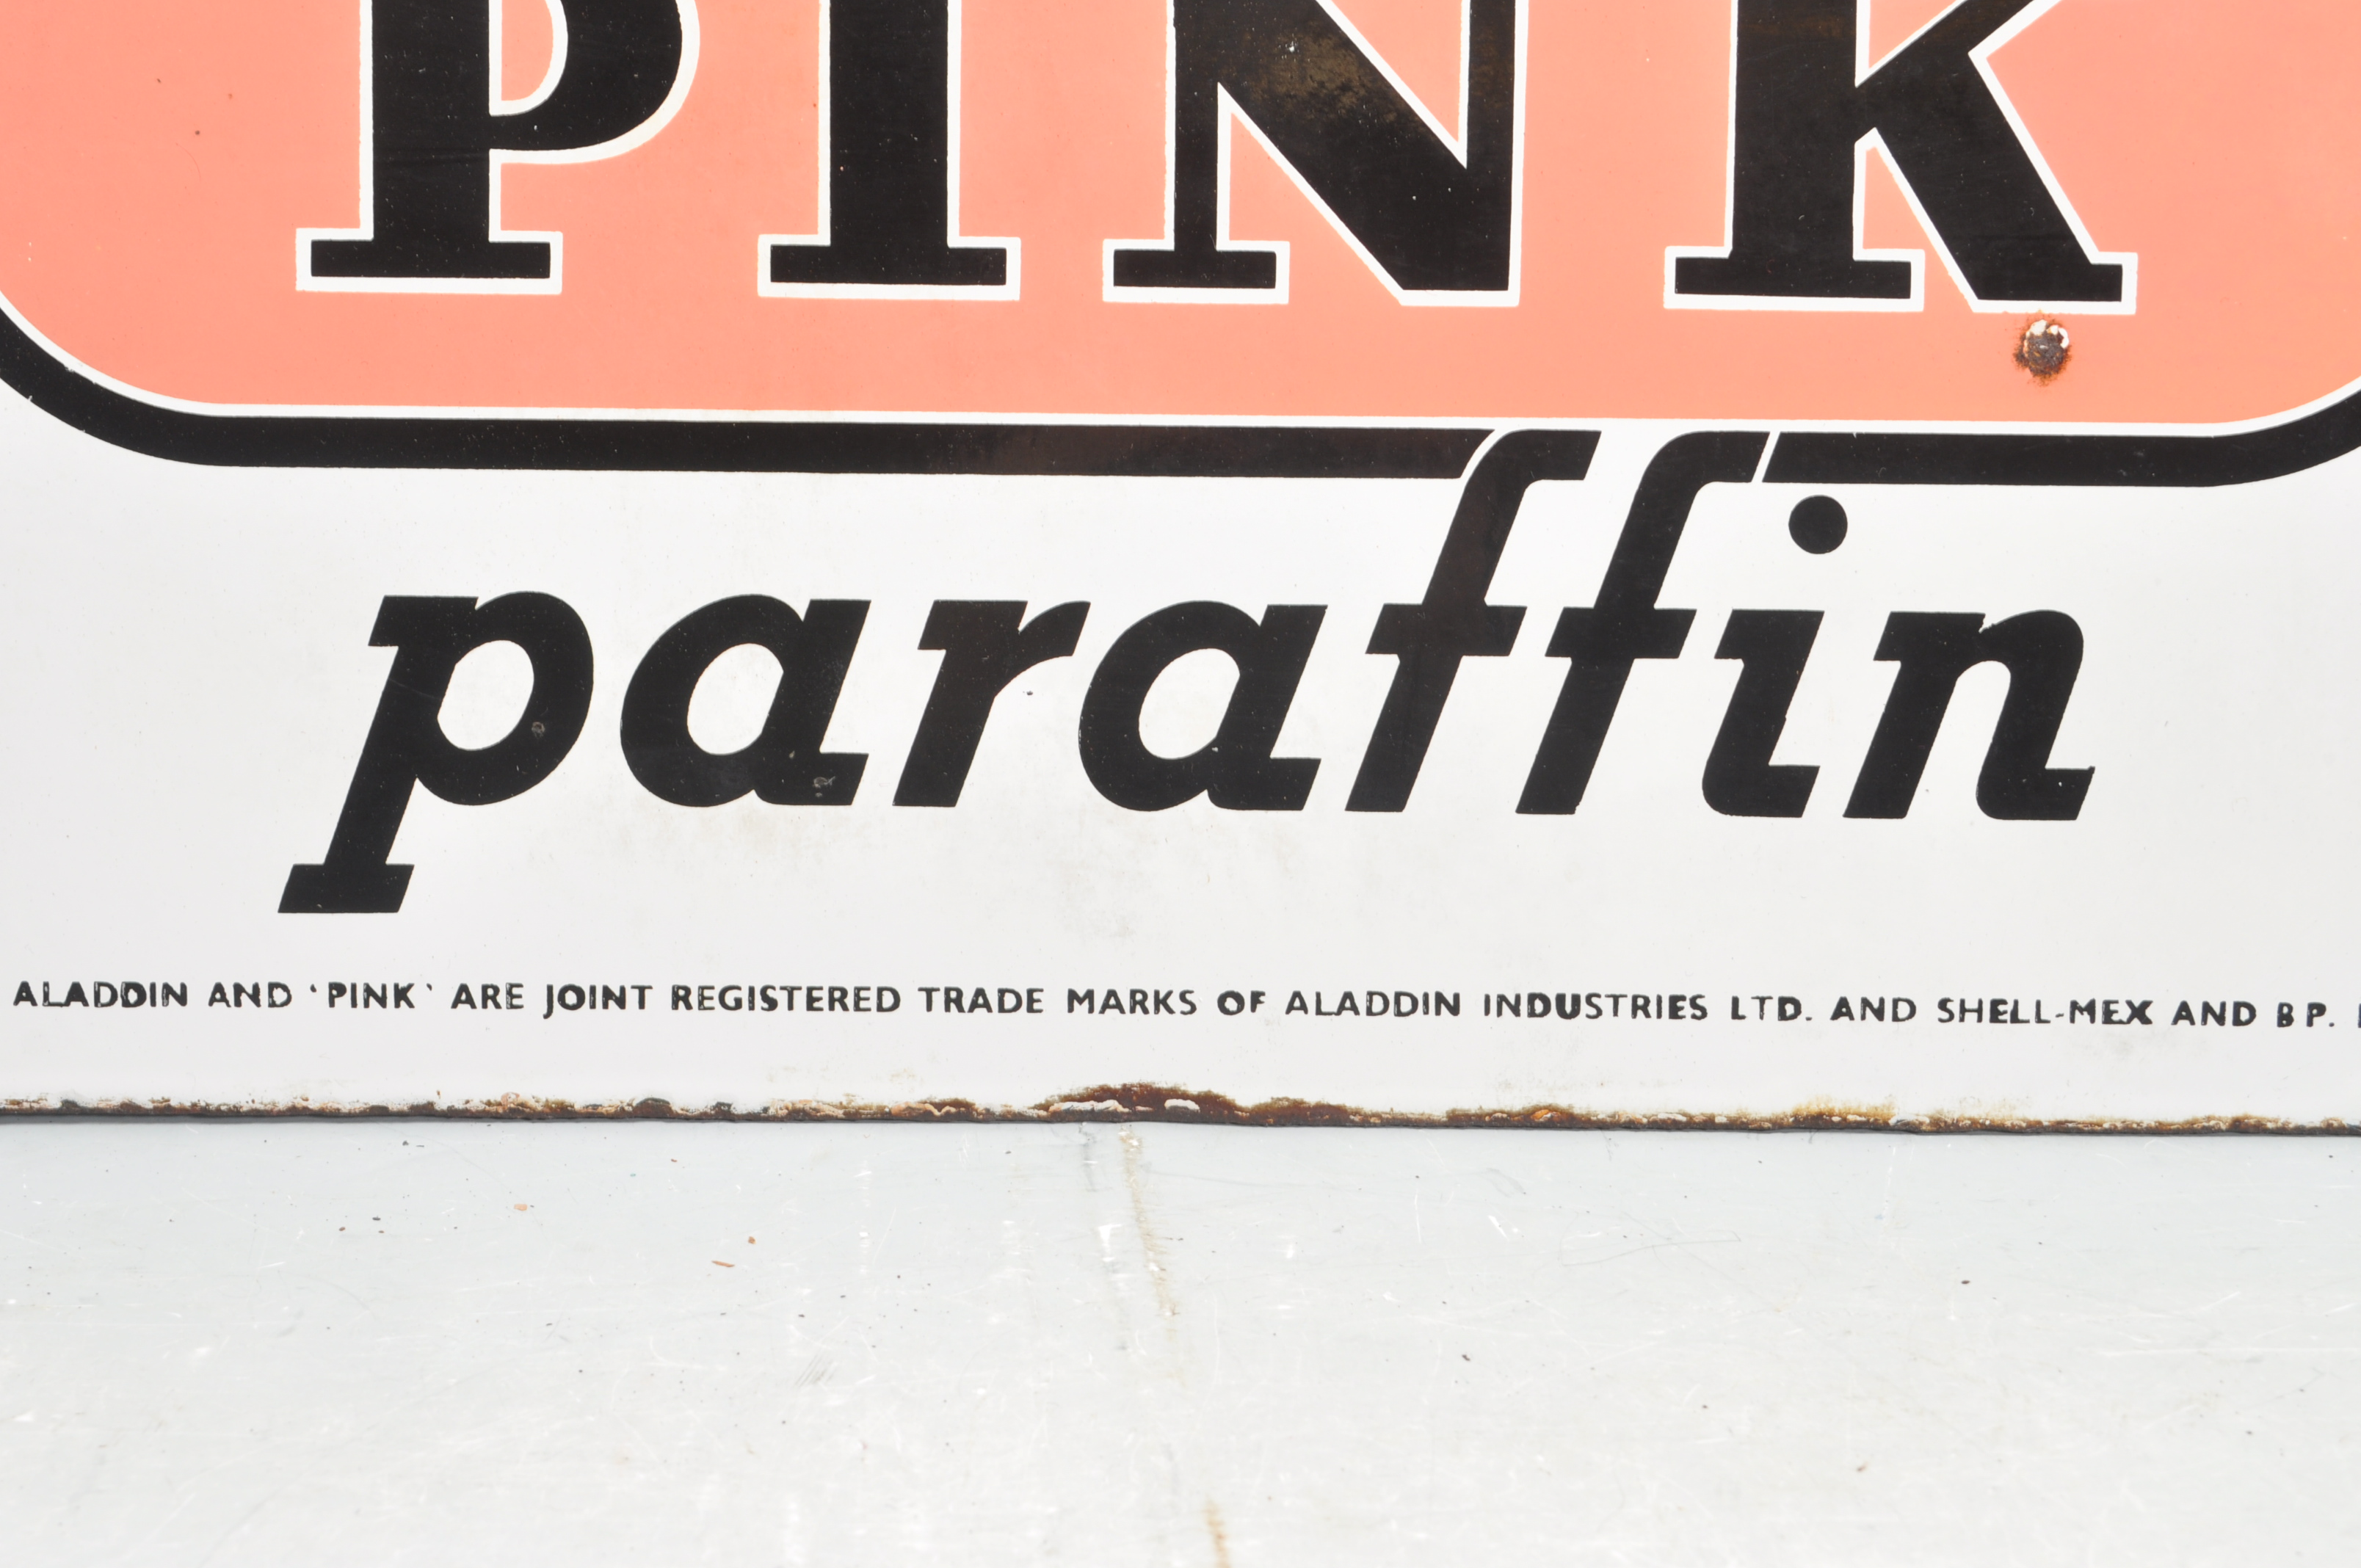 VINTAGE HABERDASHERY DOUBLE SIDED ENAMEL SIGN BY ALADDIN PINK PARAFFIN - Image 5 of 7